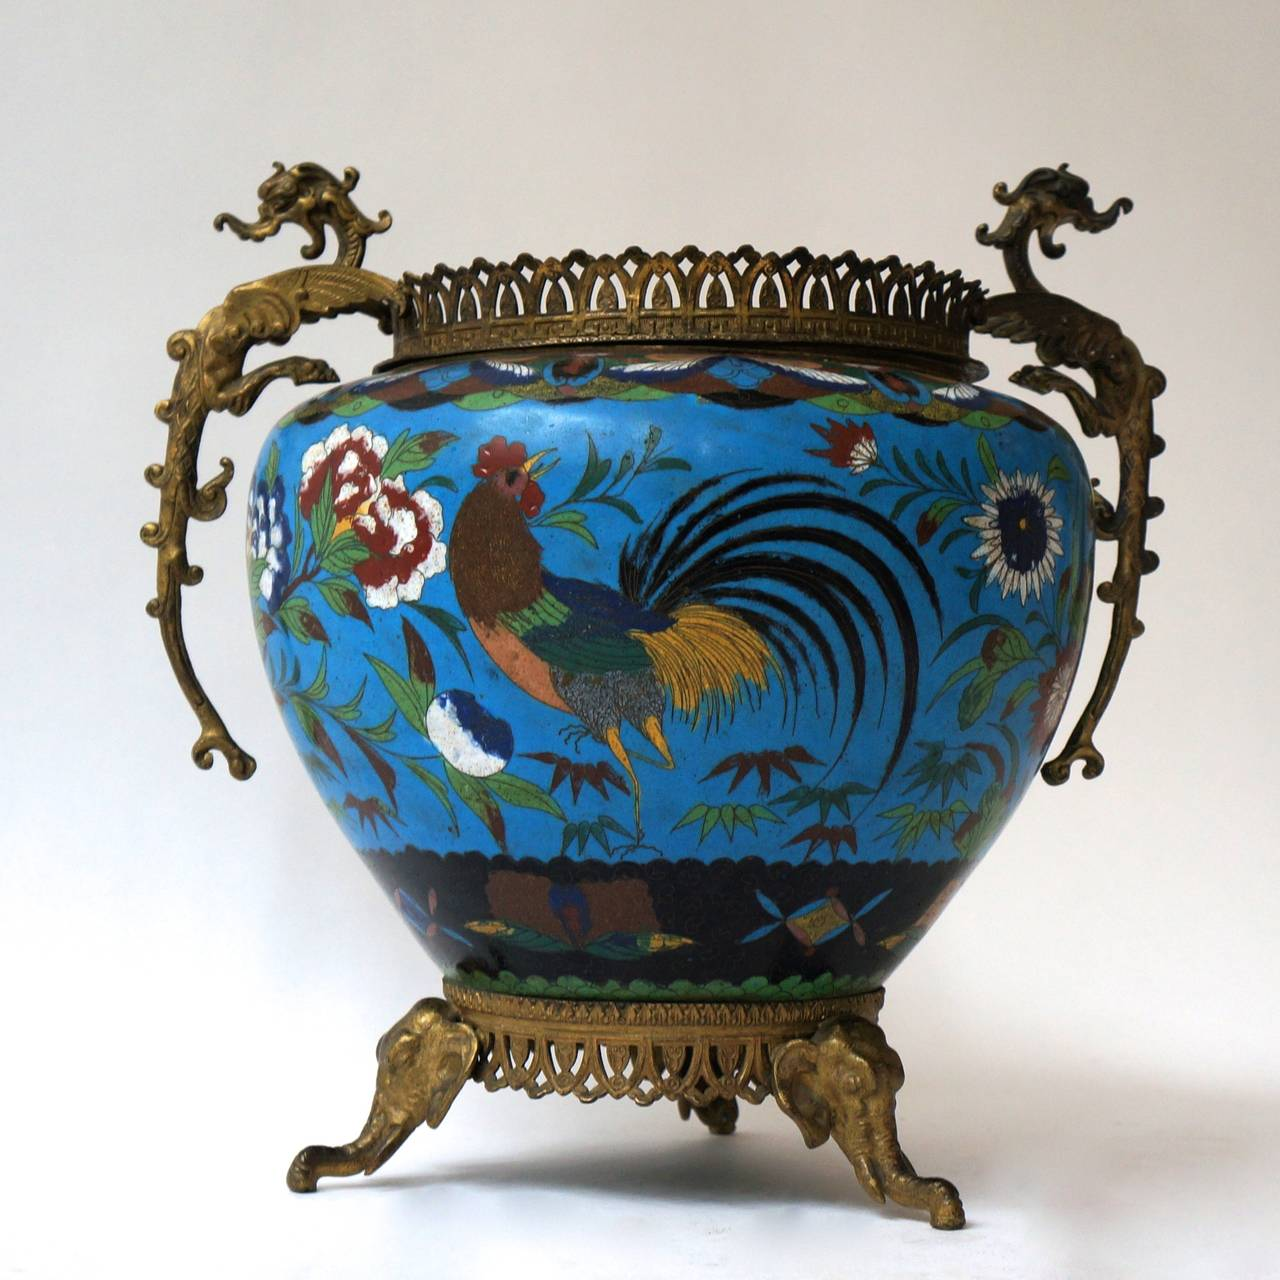 Chinoiserie Large Chinese Cloisonné Jardinière or Planter Pot For Sale